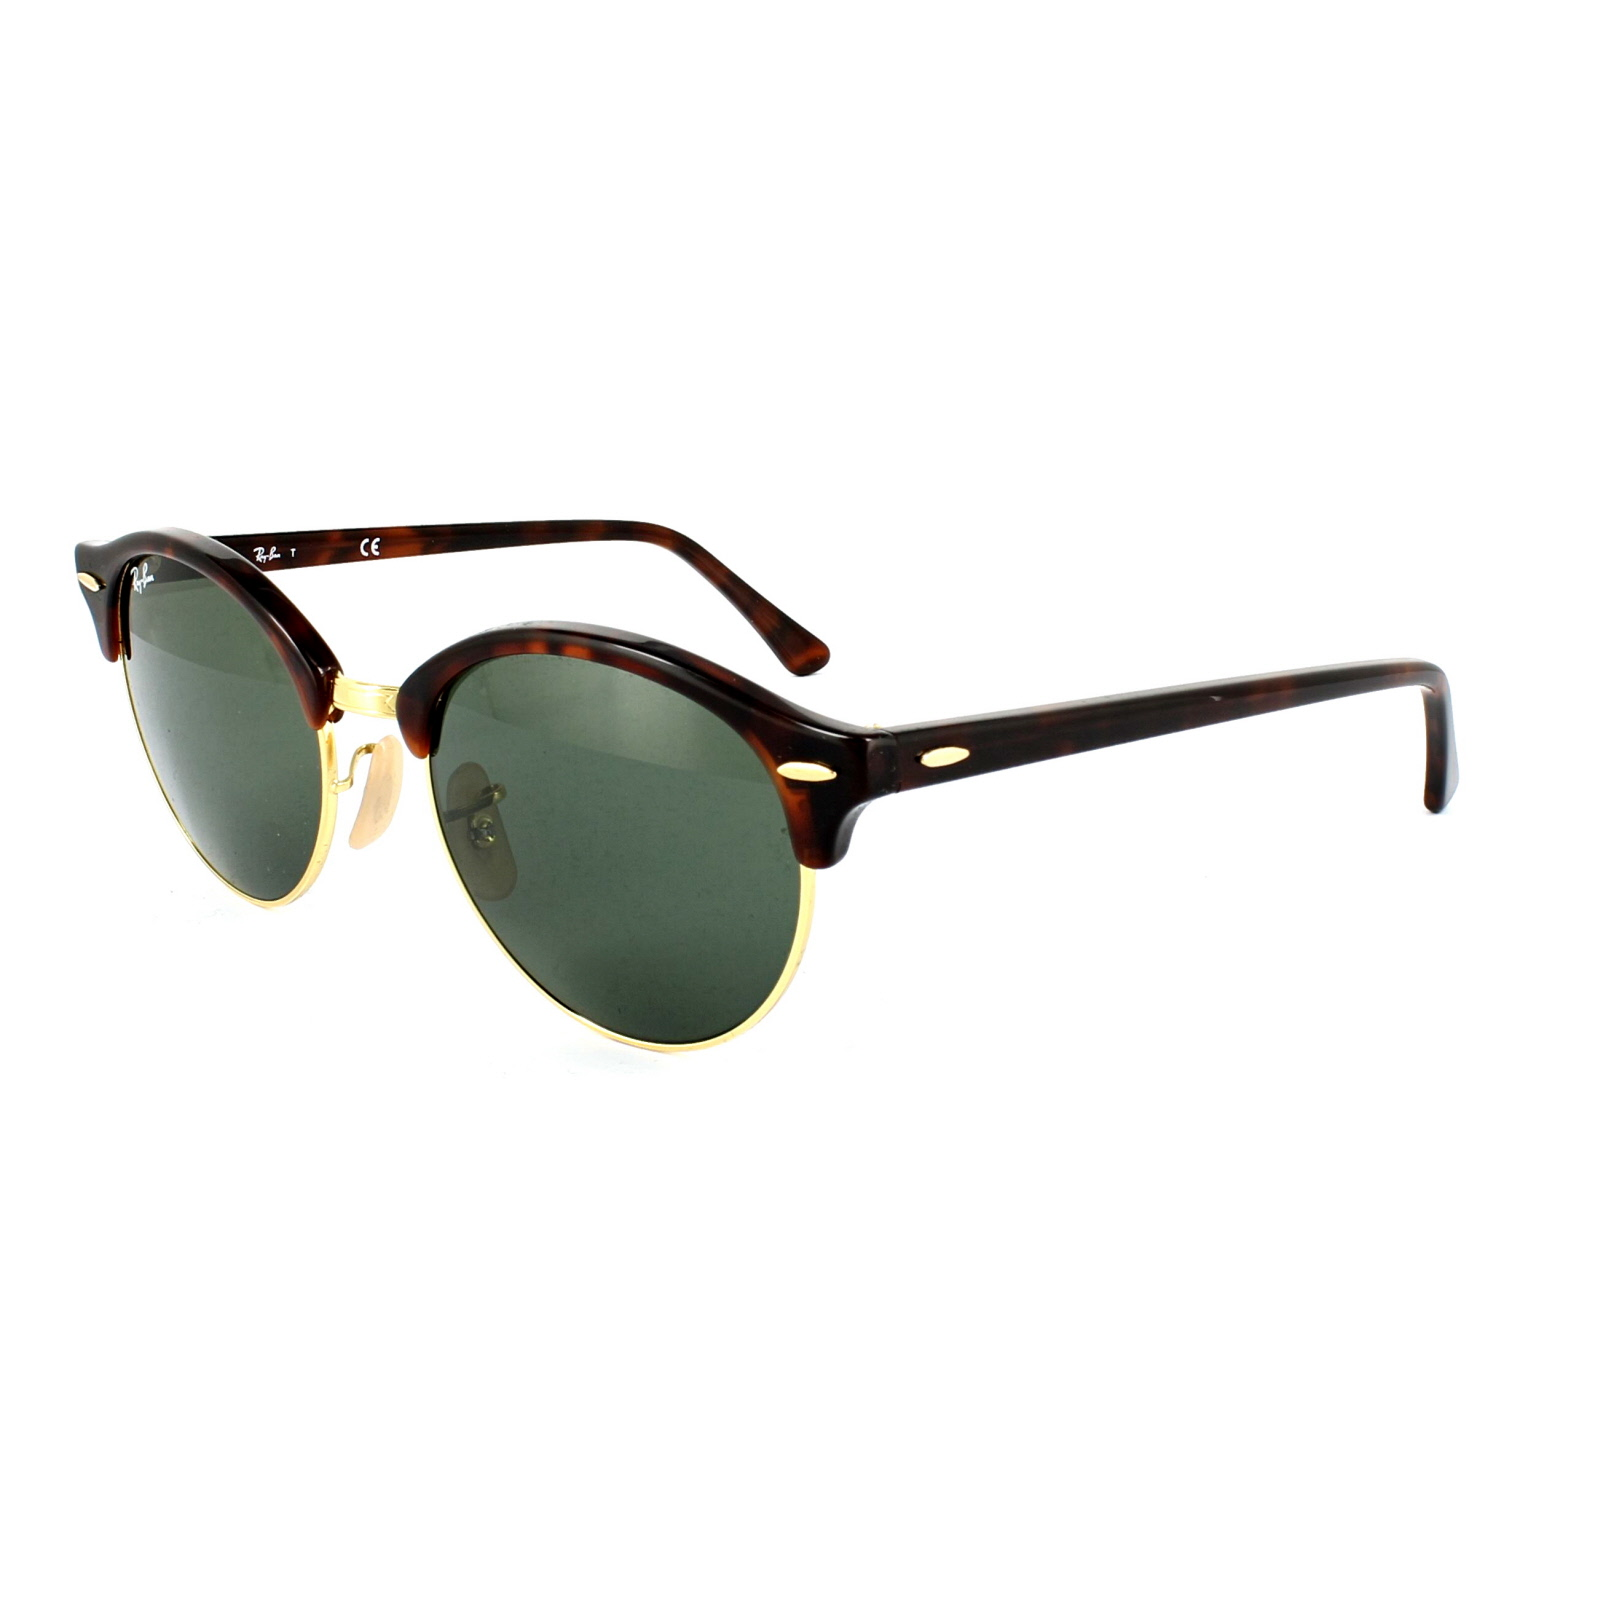 77b9412f60506 Sentinel Ray-Ban Sunglasses Clubround 4246 990 Red Havana   Gold Green